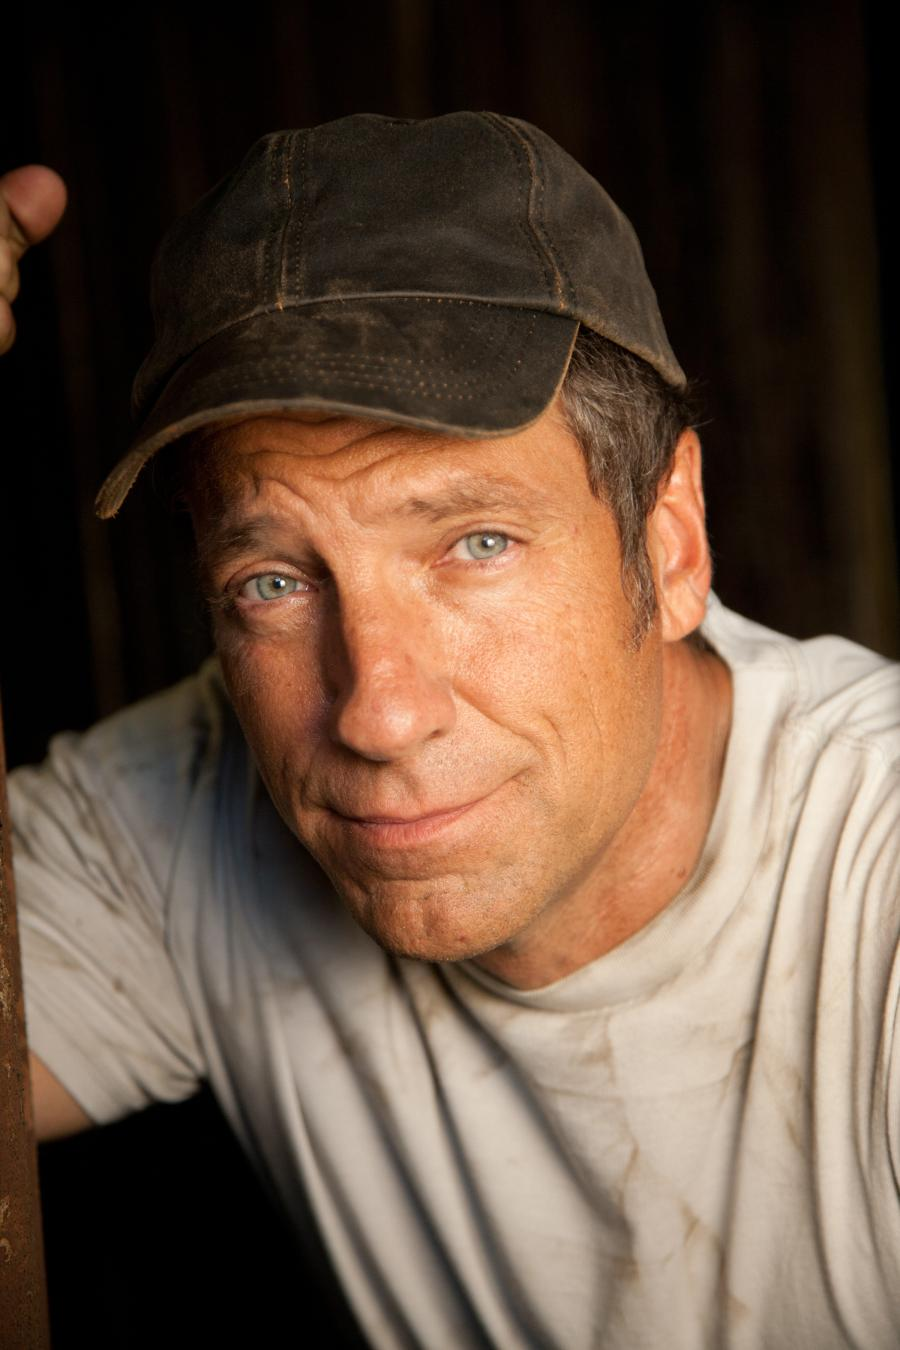 Mike Rowe, best known as the host of Dirty Jobs.